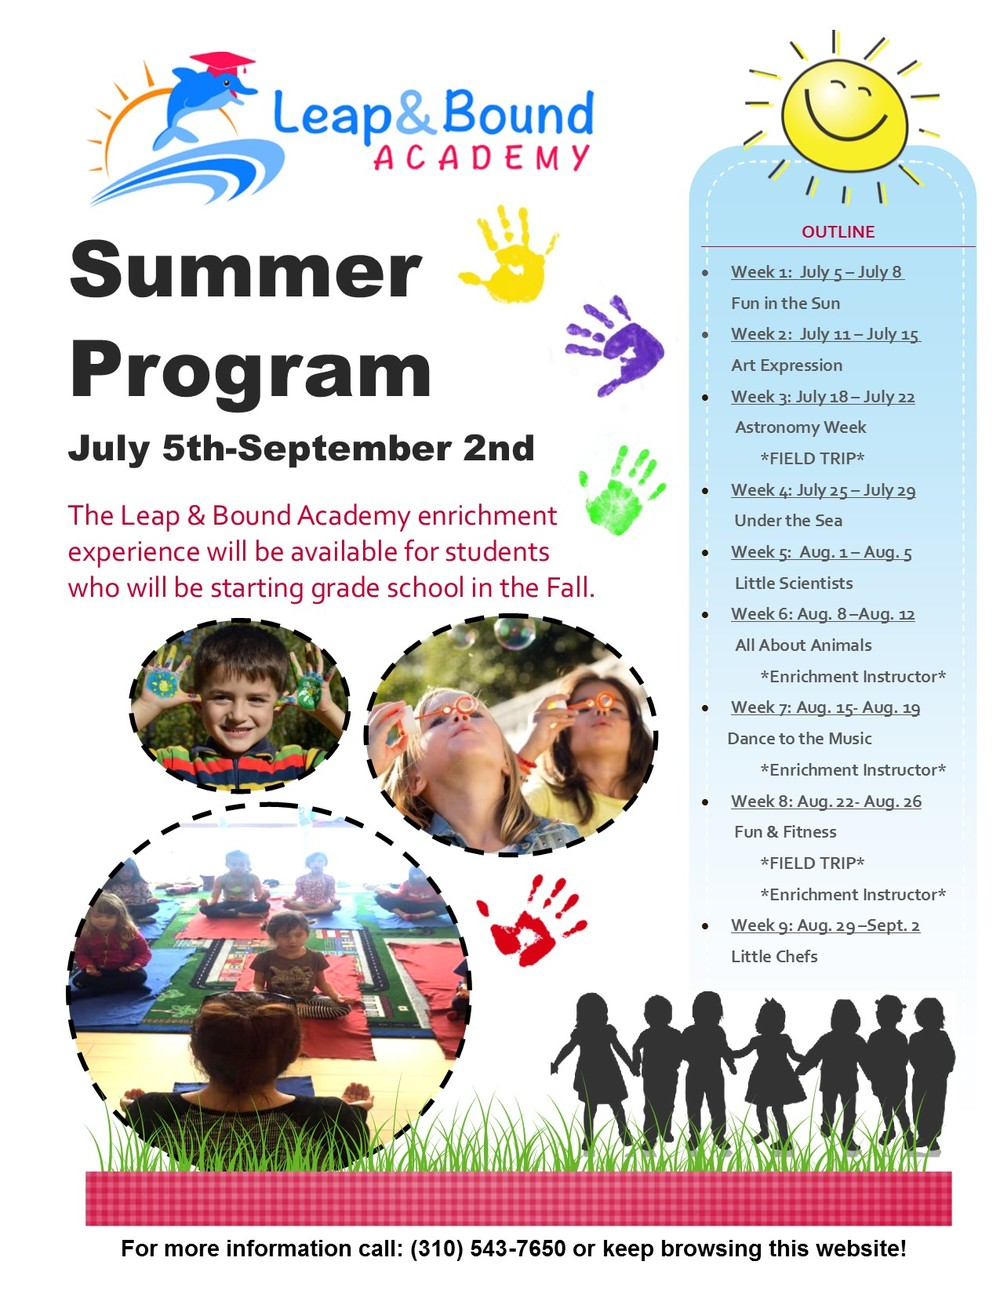 Summer Program July 5th-September 2nd The Leap & Bound Academy enrichment experience will be available for students who will be starting grade school in the Fall.  · Week 1:  July 5 – July 8 - Fun in the Sun · Week 2:  July 11 – July 15 - Art Expression · Week 3: July 18 – July 22 - Astronomy Week *FIELD TRIP* · Week 4: July 25 – July 29 - Under the Sea · Week 5:  Aug. 1 – Aug. 5 - Little Scientist · Week 6: Aug. 8 –Aug. 12 - All About Animals *Enrichment Instructor* · Week 7: Aug. 15- Aug. 19 - Dance to the Music *Enrichment Instructor* · Week 8: Aug. 22- Aug. 26 - Fun & Fitness *FIELD TRIP* *Enrichment Instructor* · Week 9: Aug. 29 –Sept. 2 - Little Chefs